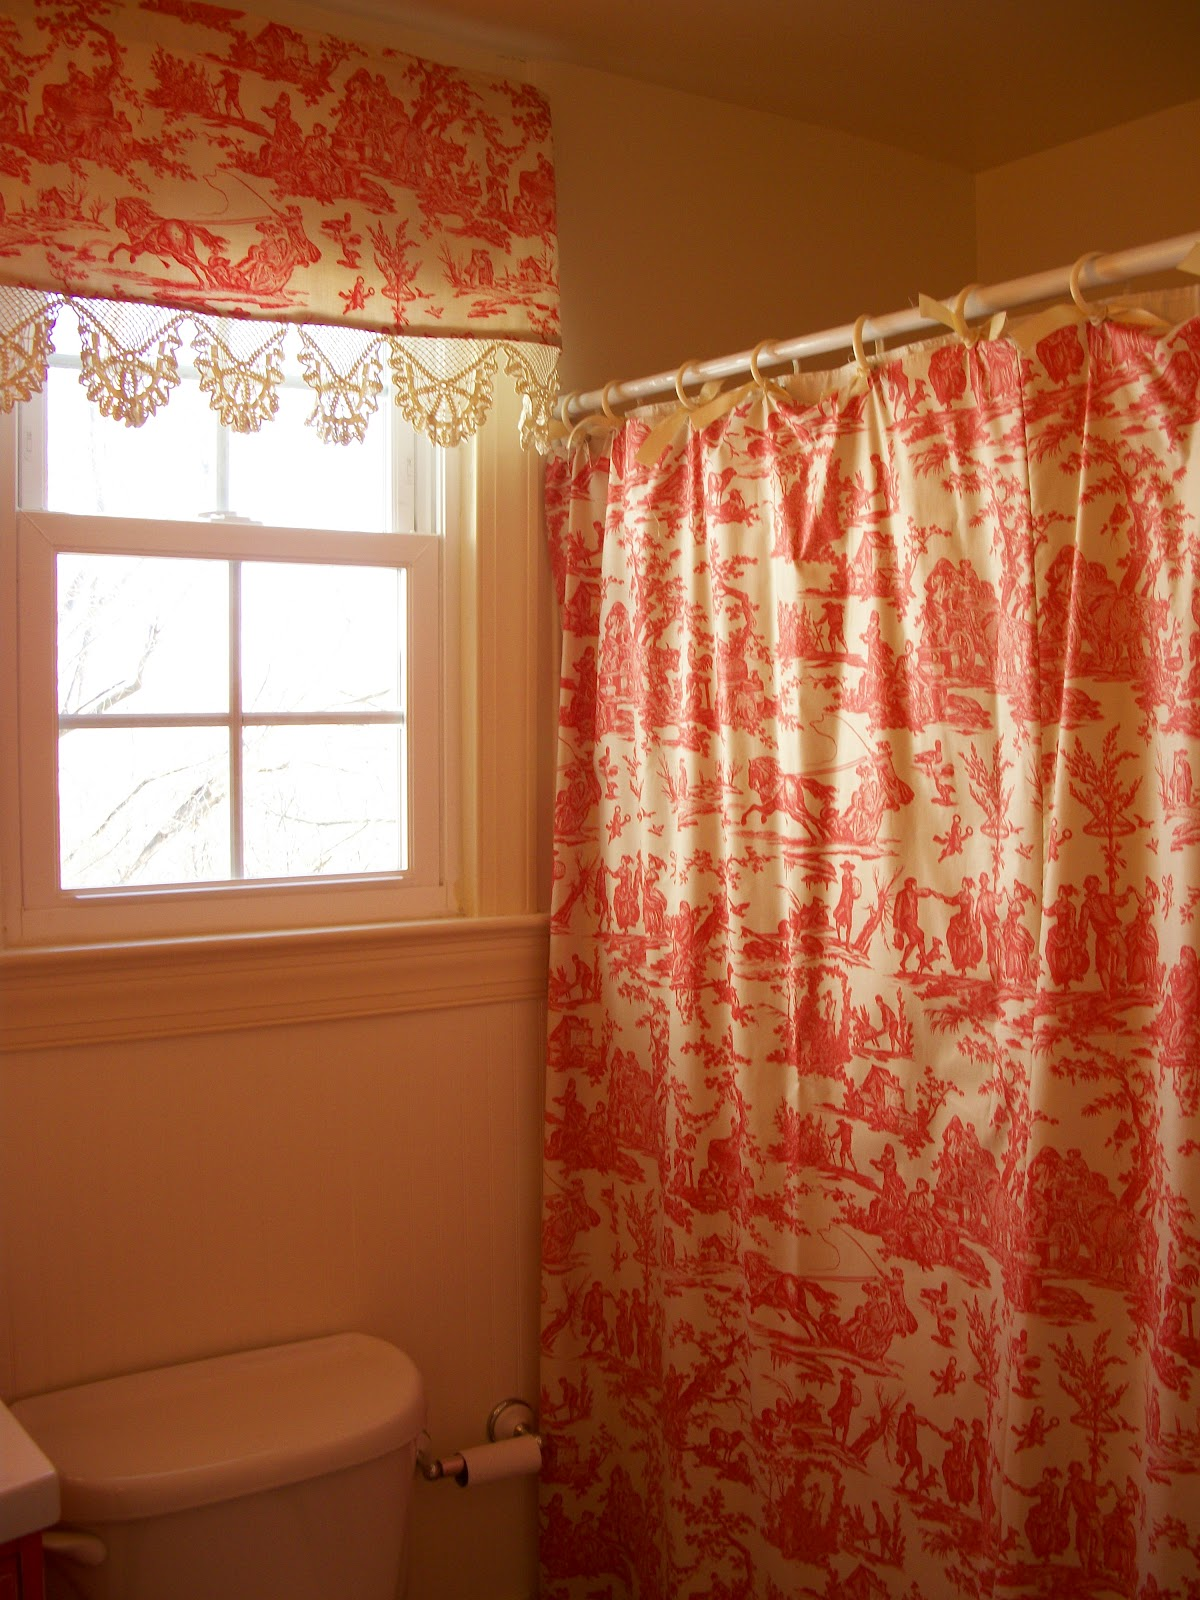 Purple Bathroom Window Curtains Shower Curtains with Trees or L